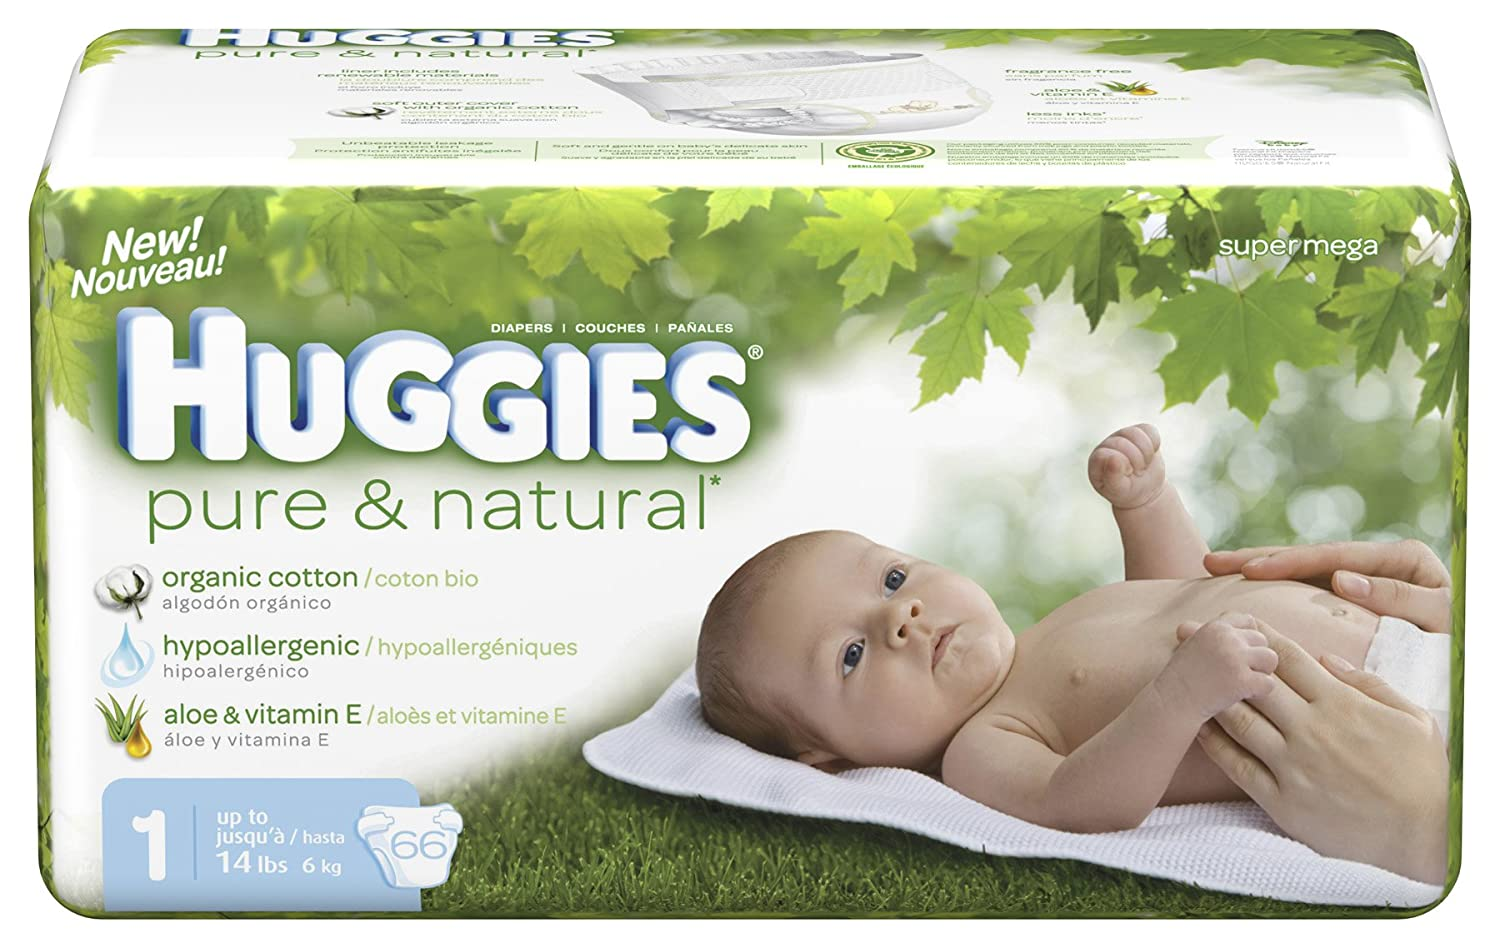 Amazon.com: Huggies Pure & Natural Diapers, Size 1, 66-Count (Pack of 2): Health & Personal Care